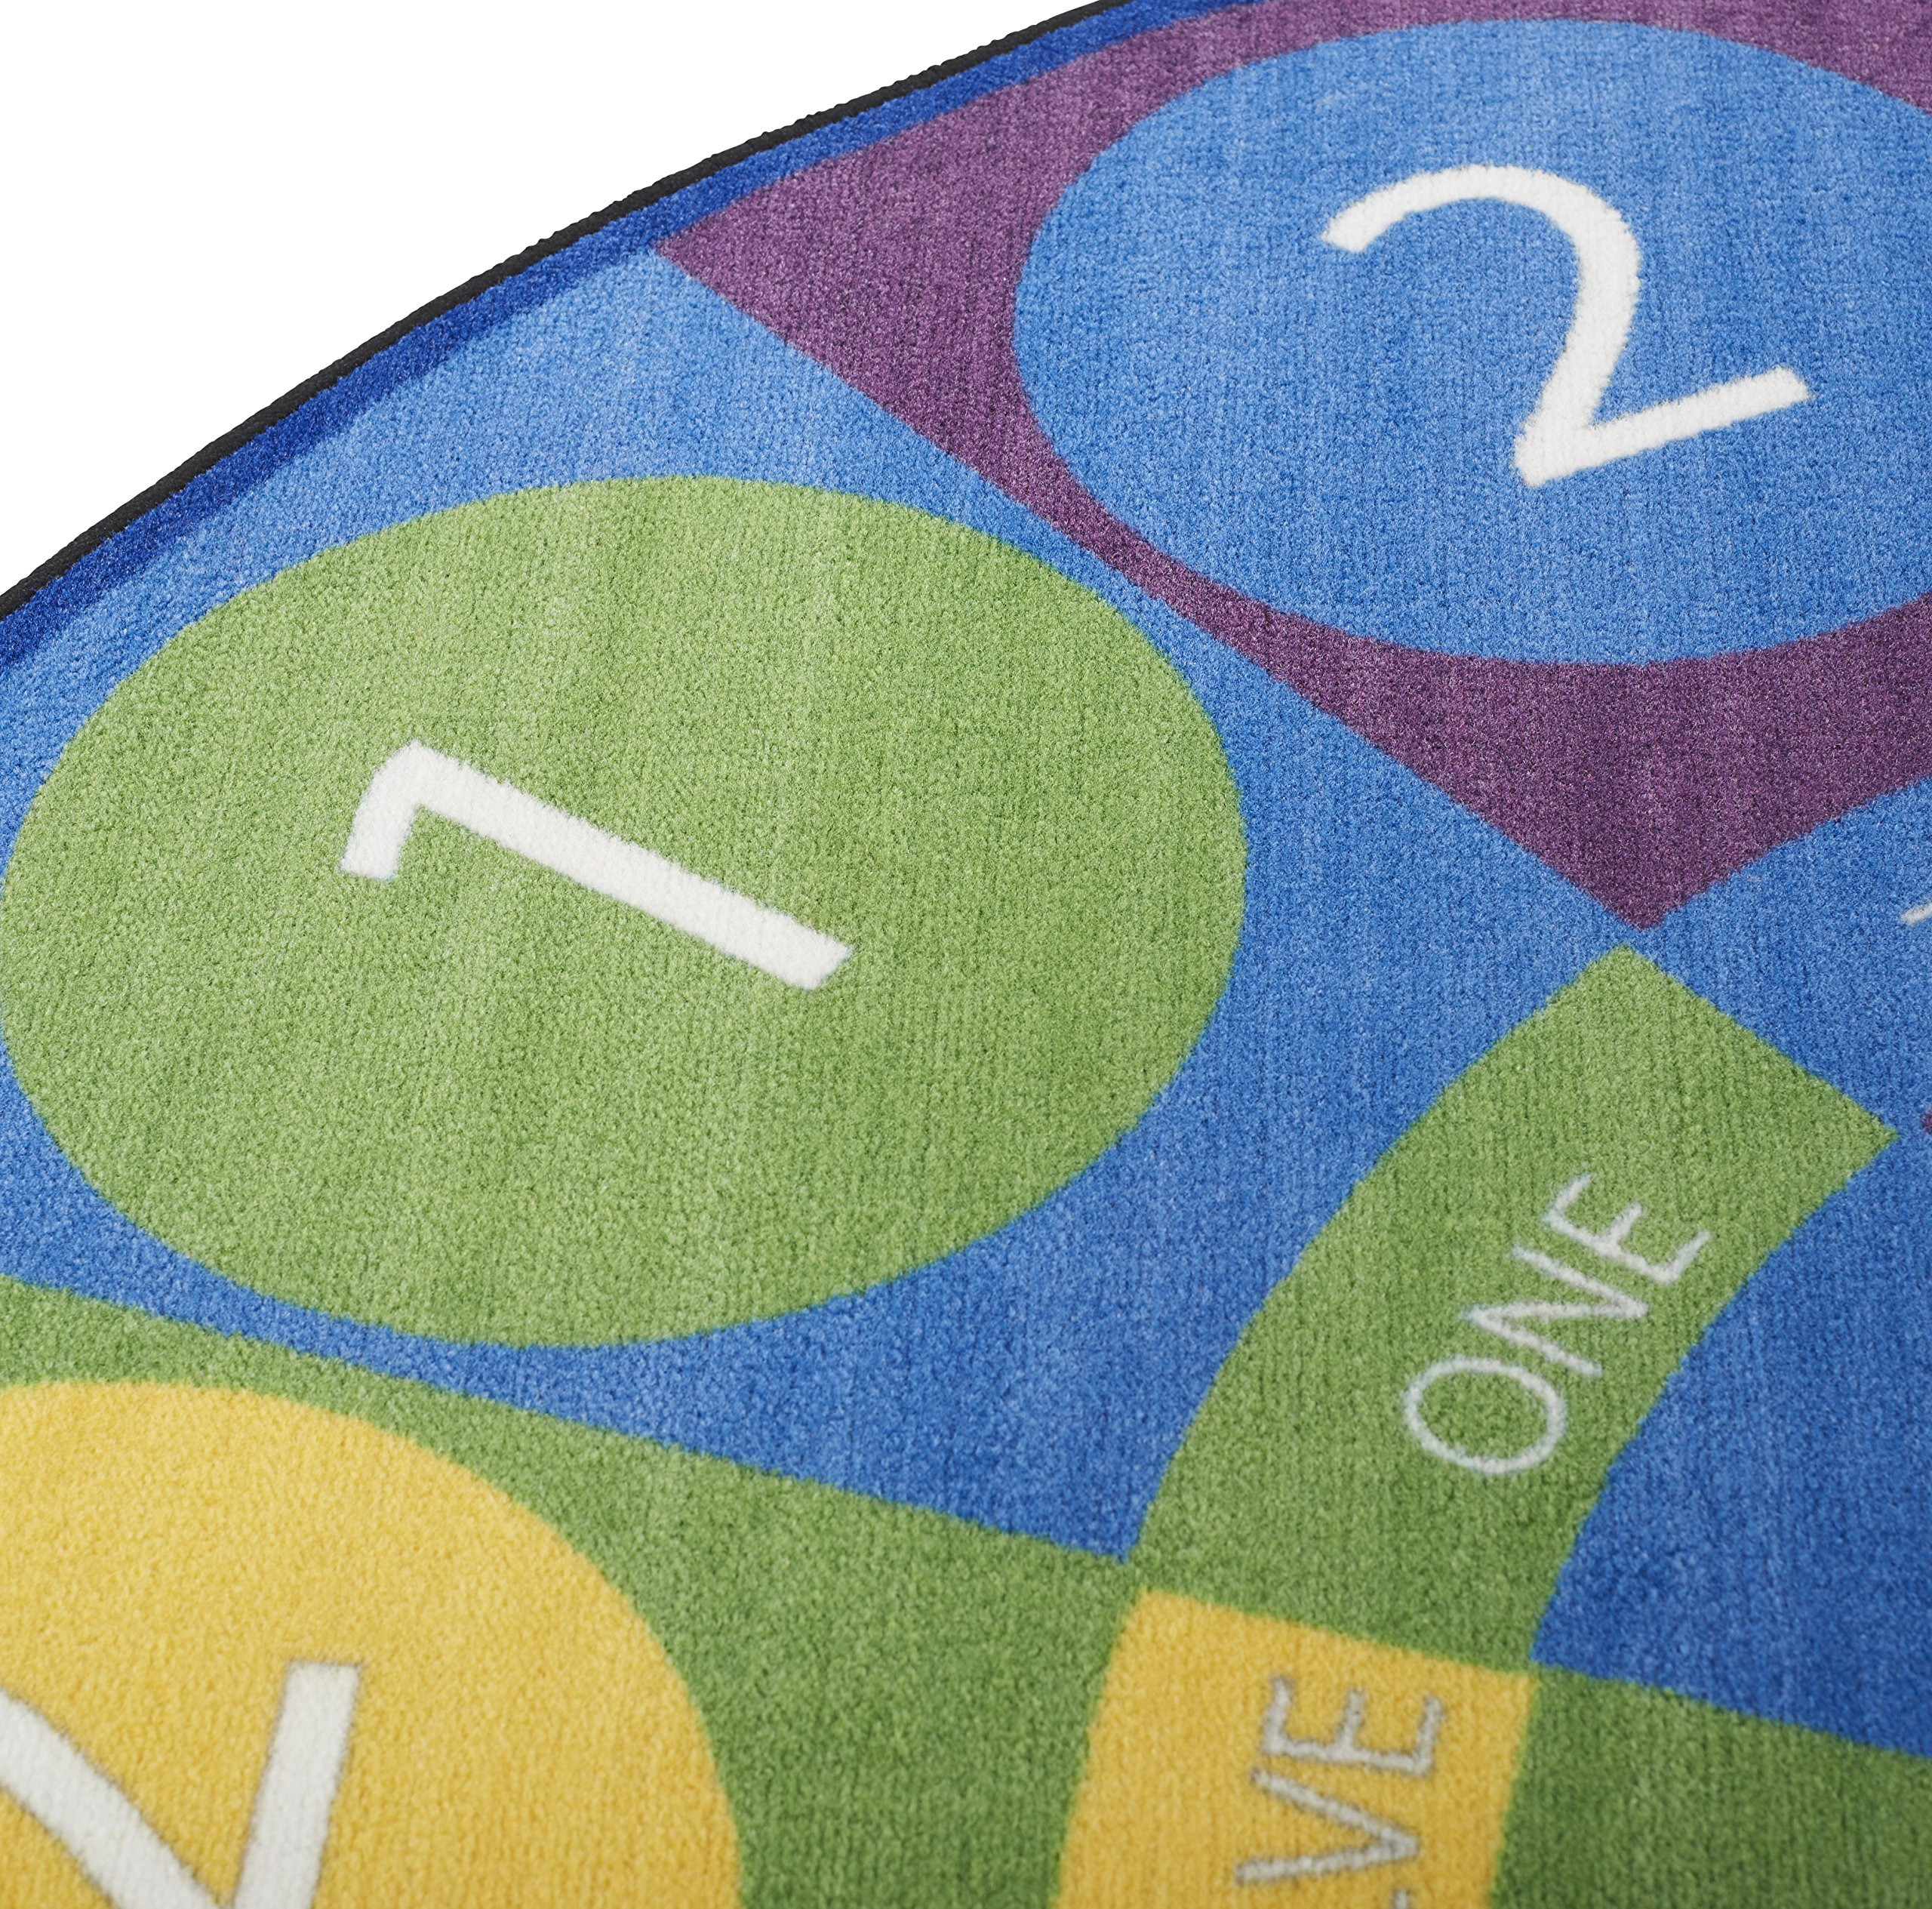 ECR4Kids Tick-Tock Clock Educational Circle Activity Rug for Children, School Classroom Learning Carpet, Round by ECR4Kids (Image #3)